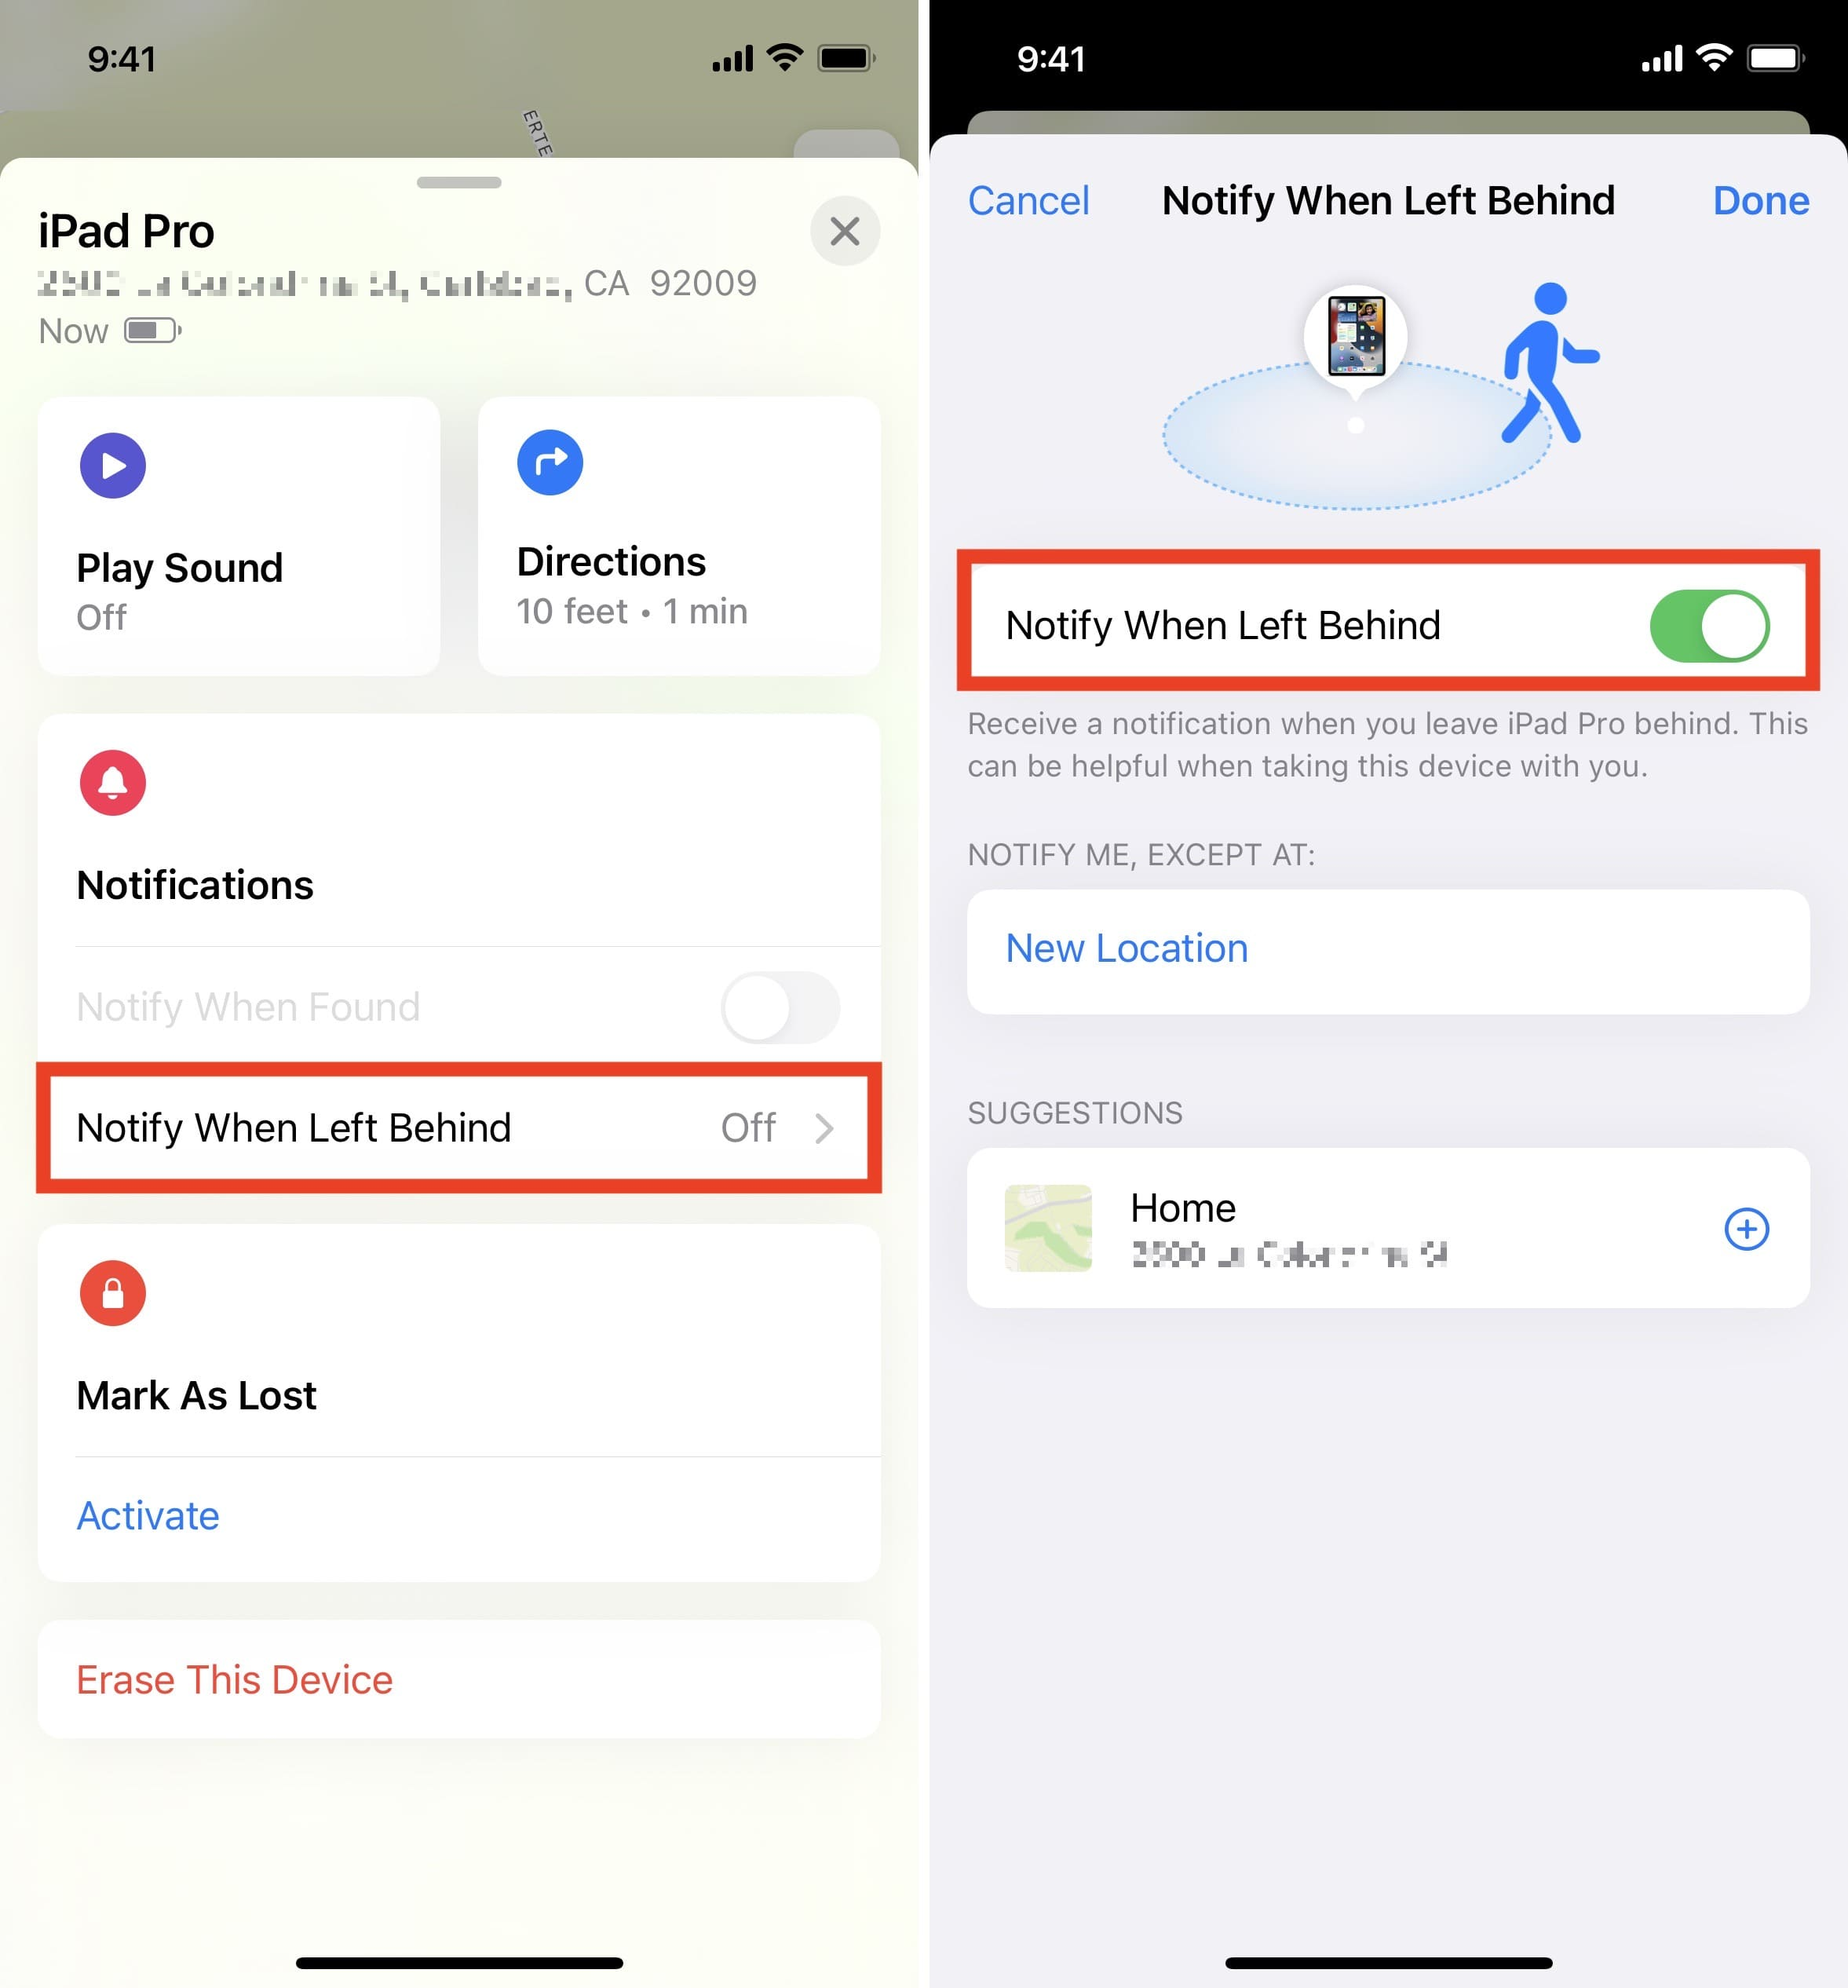 Notify When Left Behind in Find My app on iPhone in iOS 15